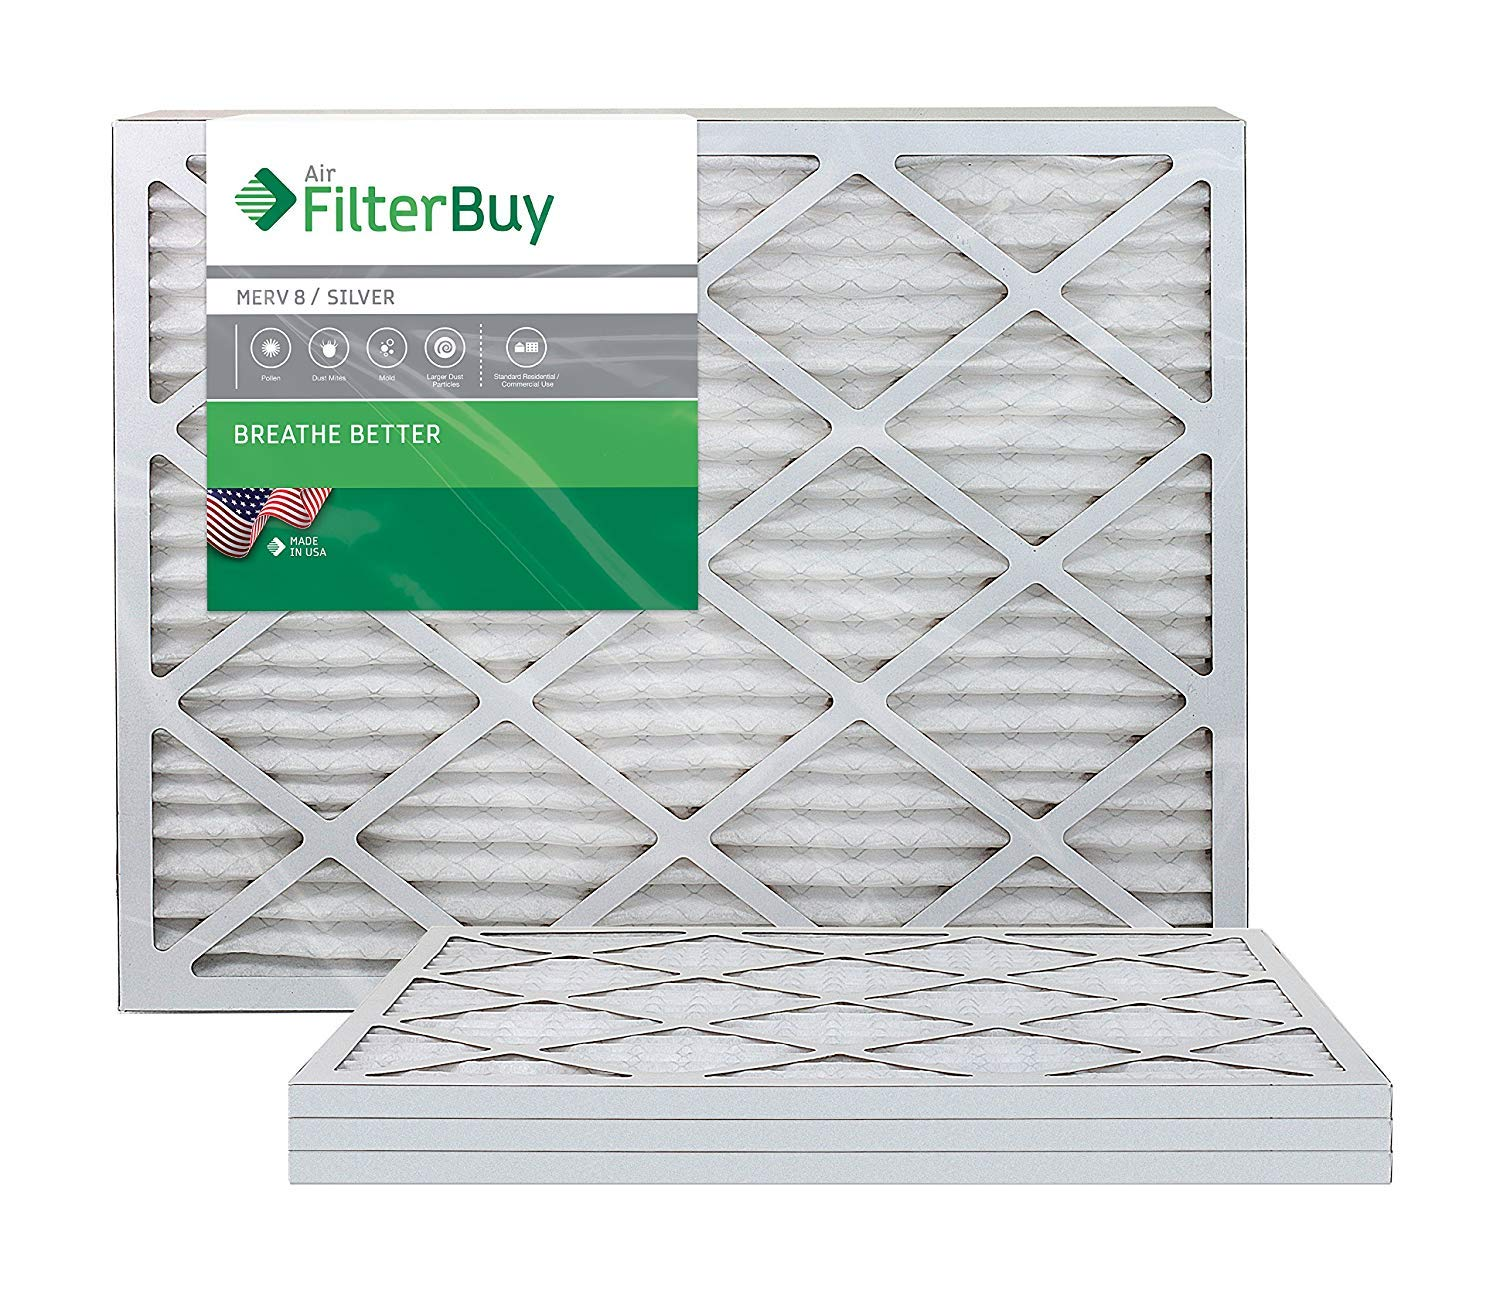 FilterBuy MERV 8 20x25x1 Pleated AC Furnace Air Filter